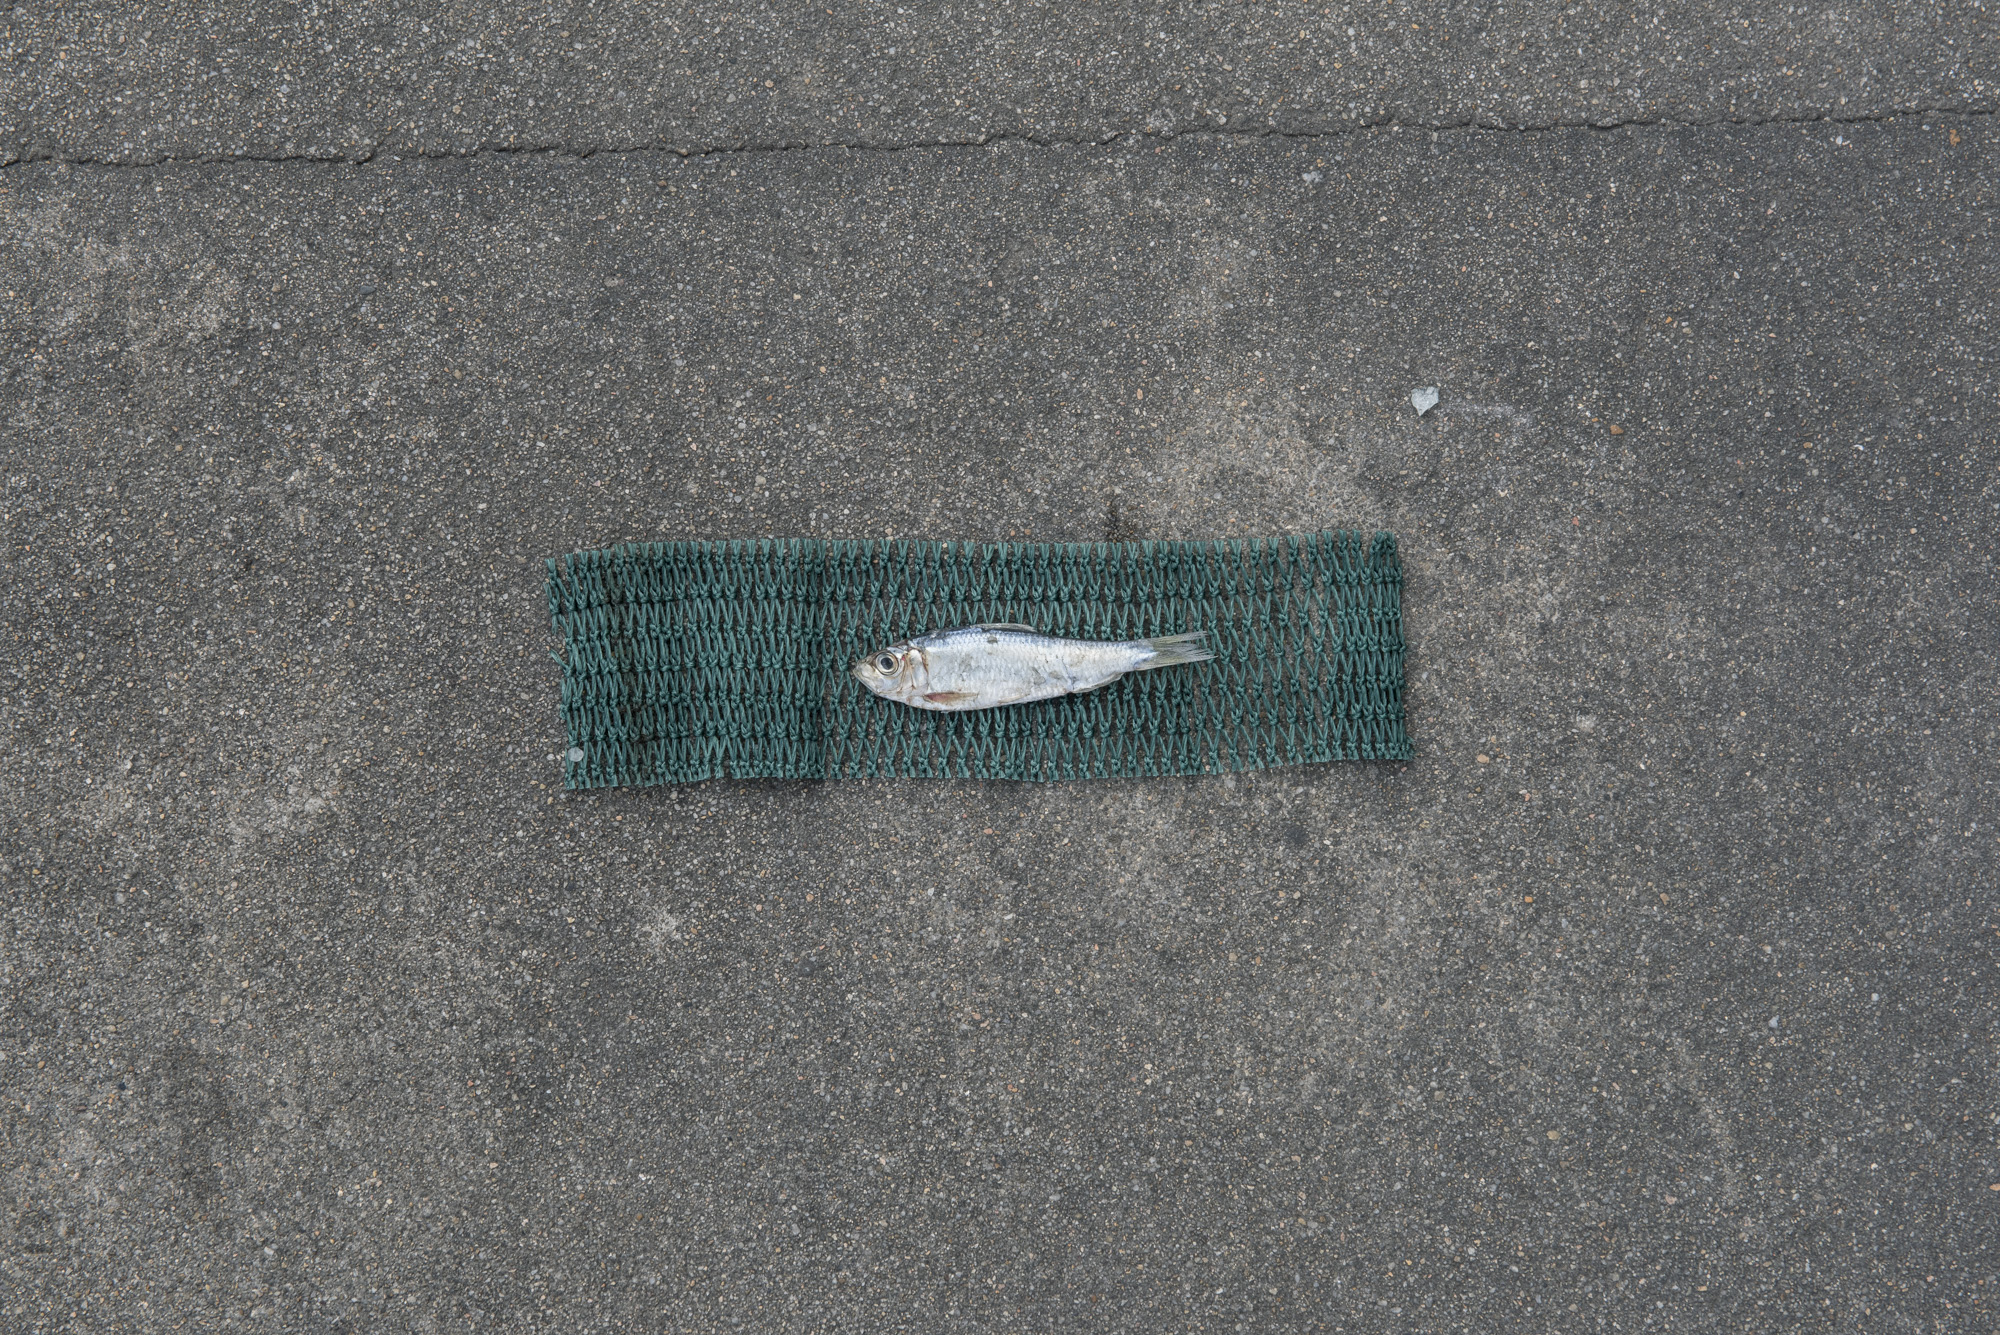 Size of juvenile Japanese scaled sardine caught for fish feed (4.5cm) versus size of average adult Japanese scaled sardine (9.5cm, as represented by green net below fish)